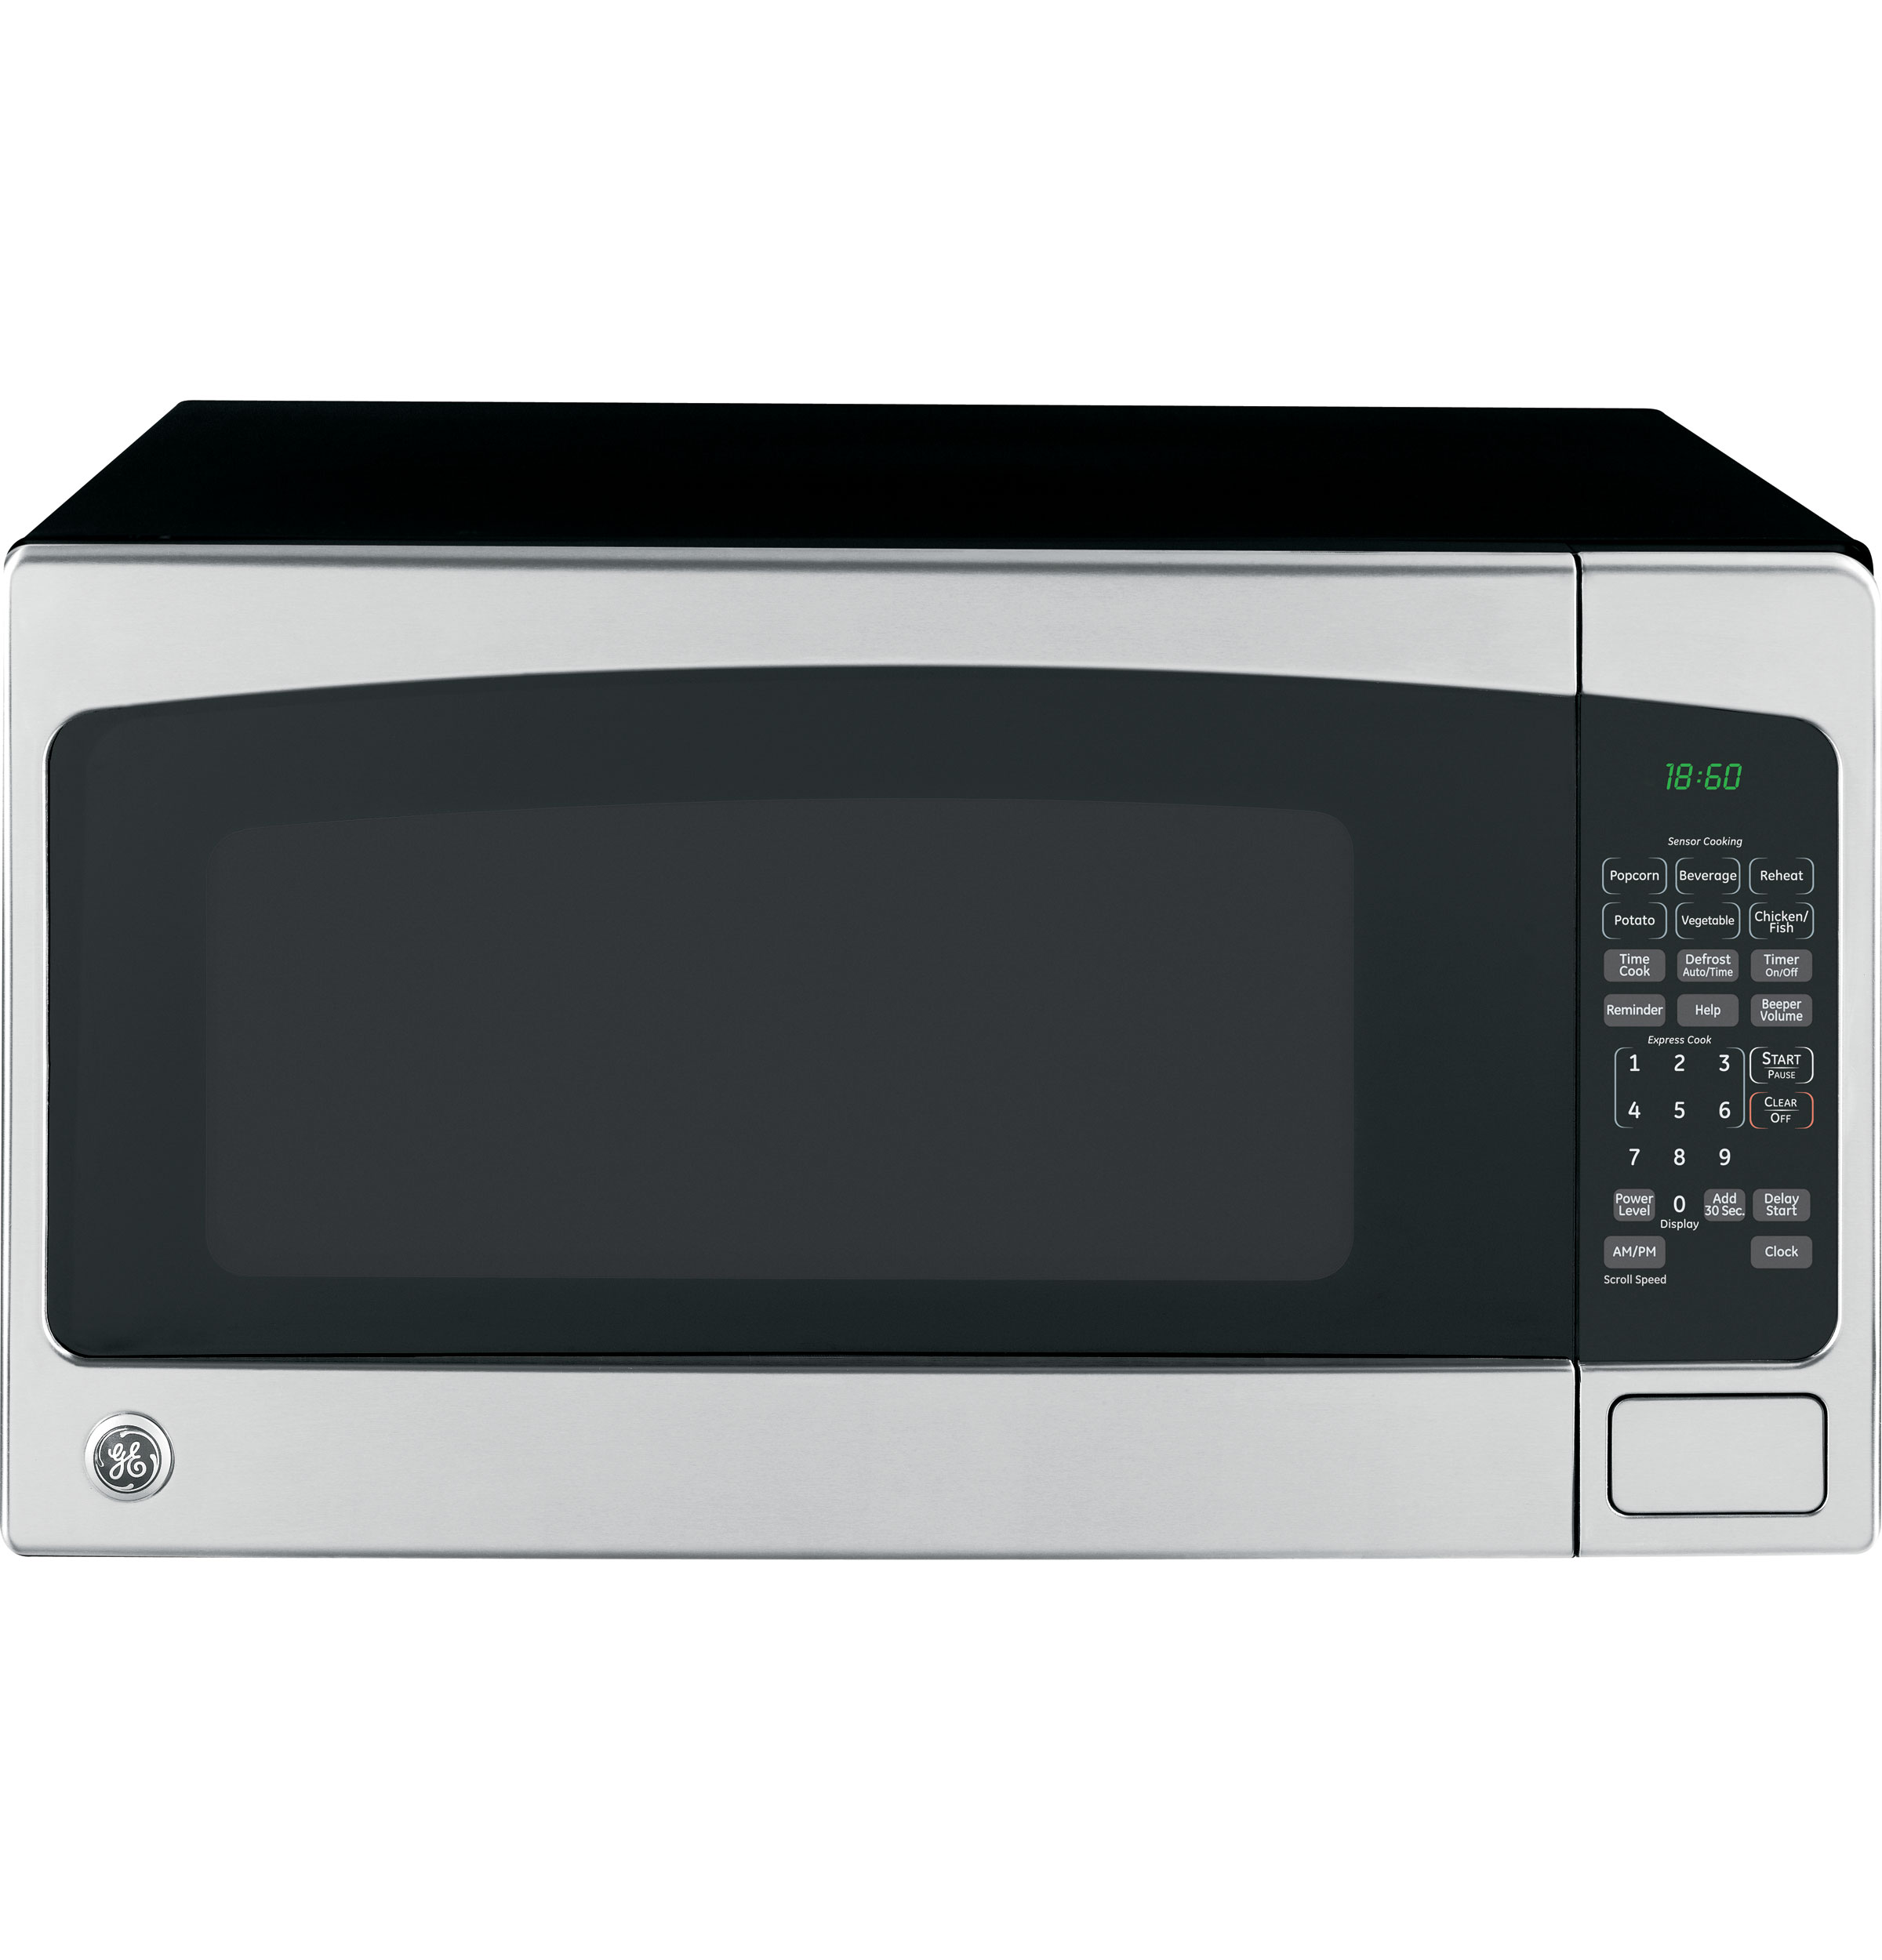 Hotpoint Countertop Microwave : Brand: GE, Model: JES2051SNSS, Color: Stainless Steel